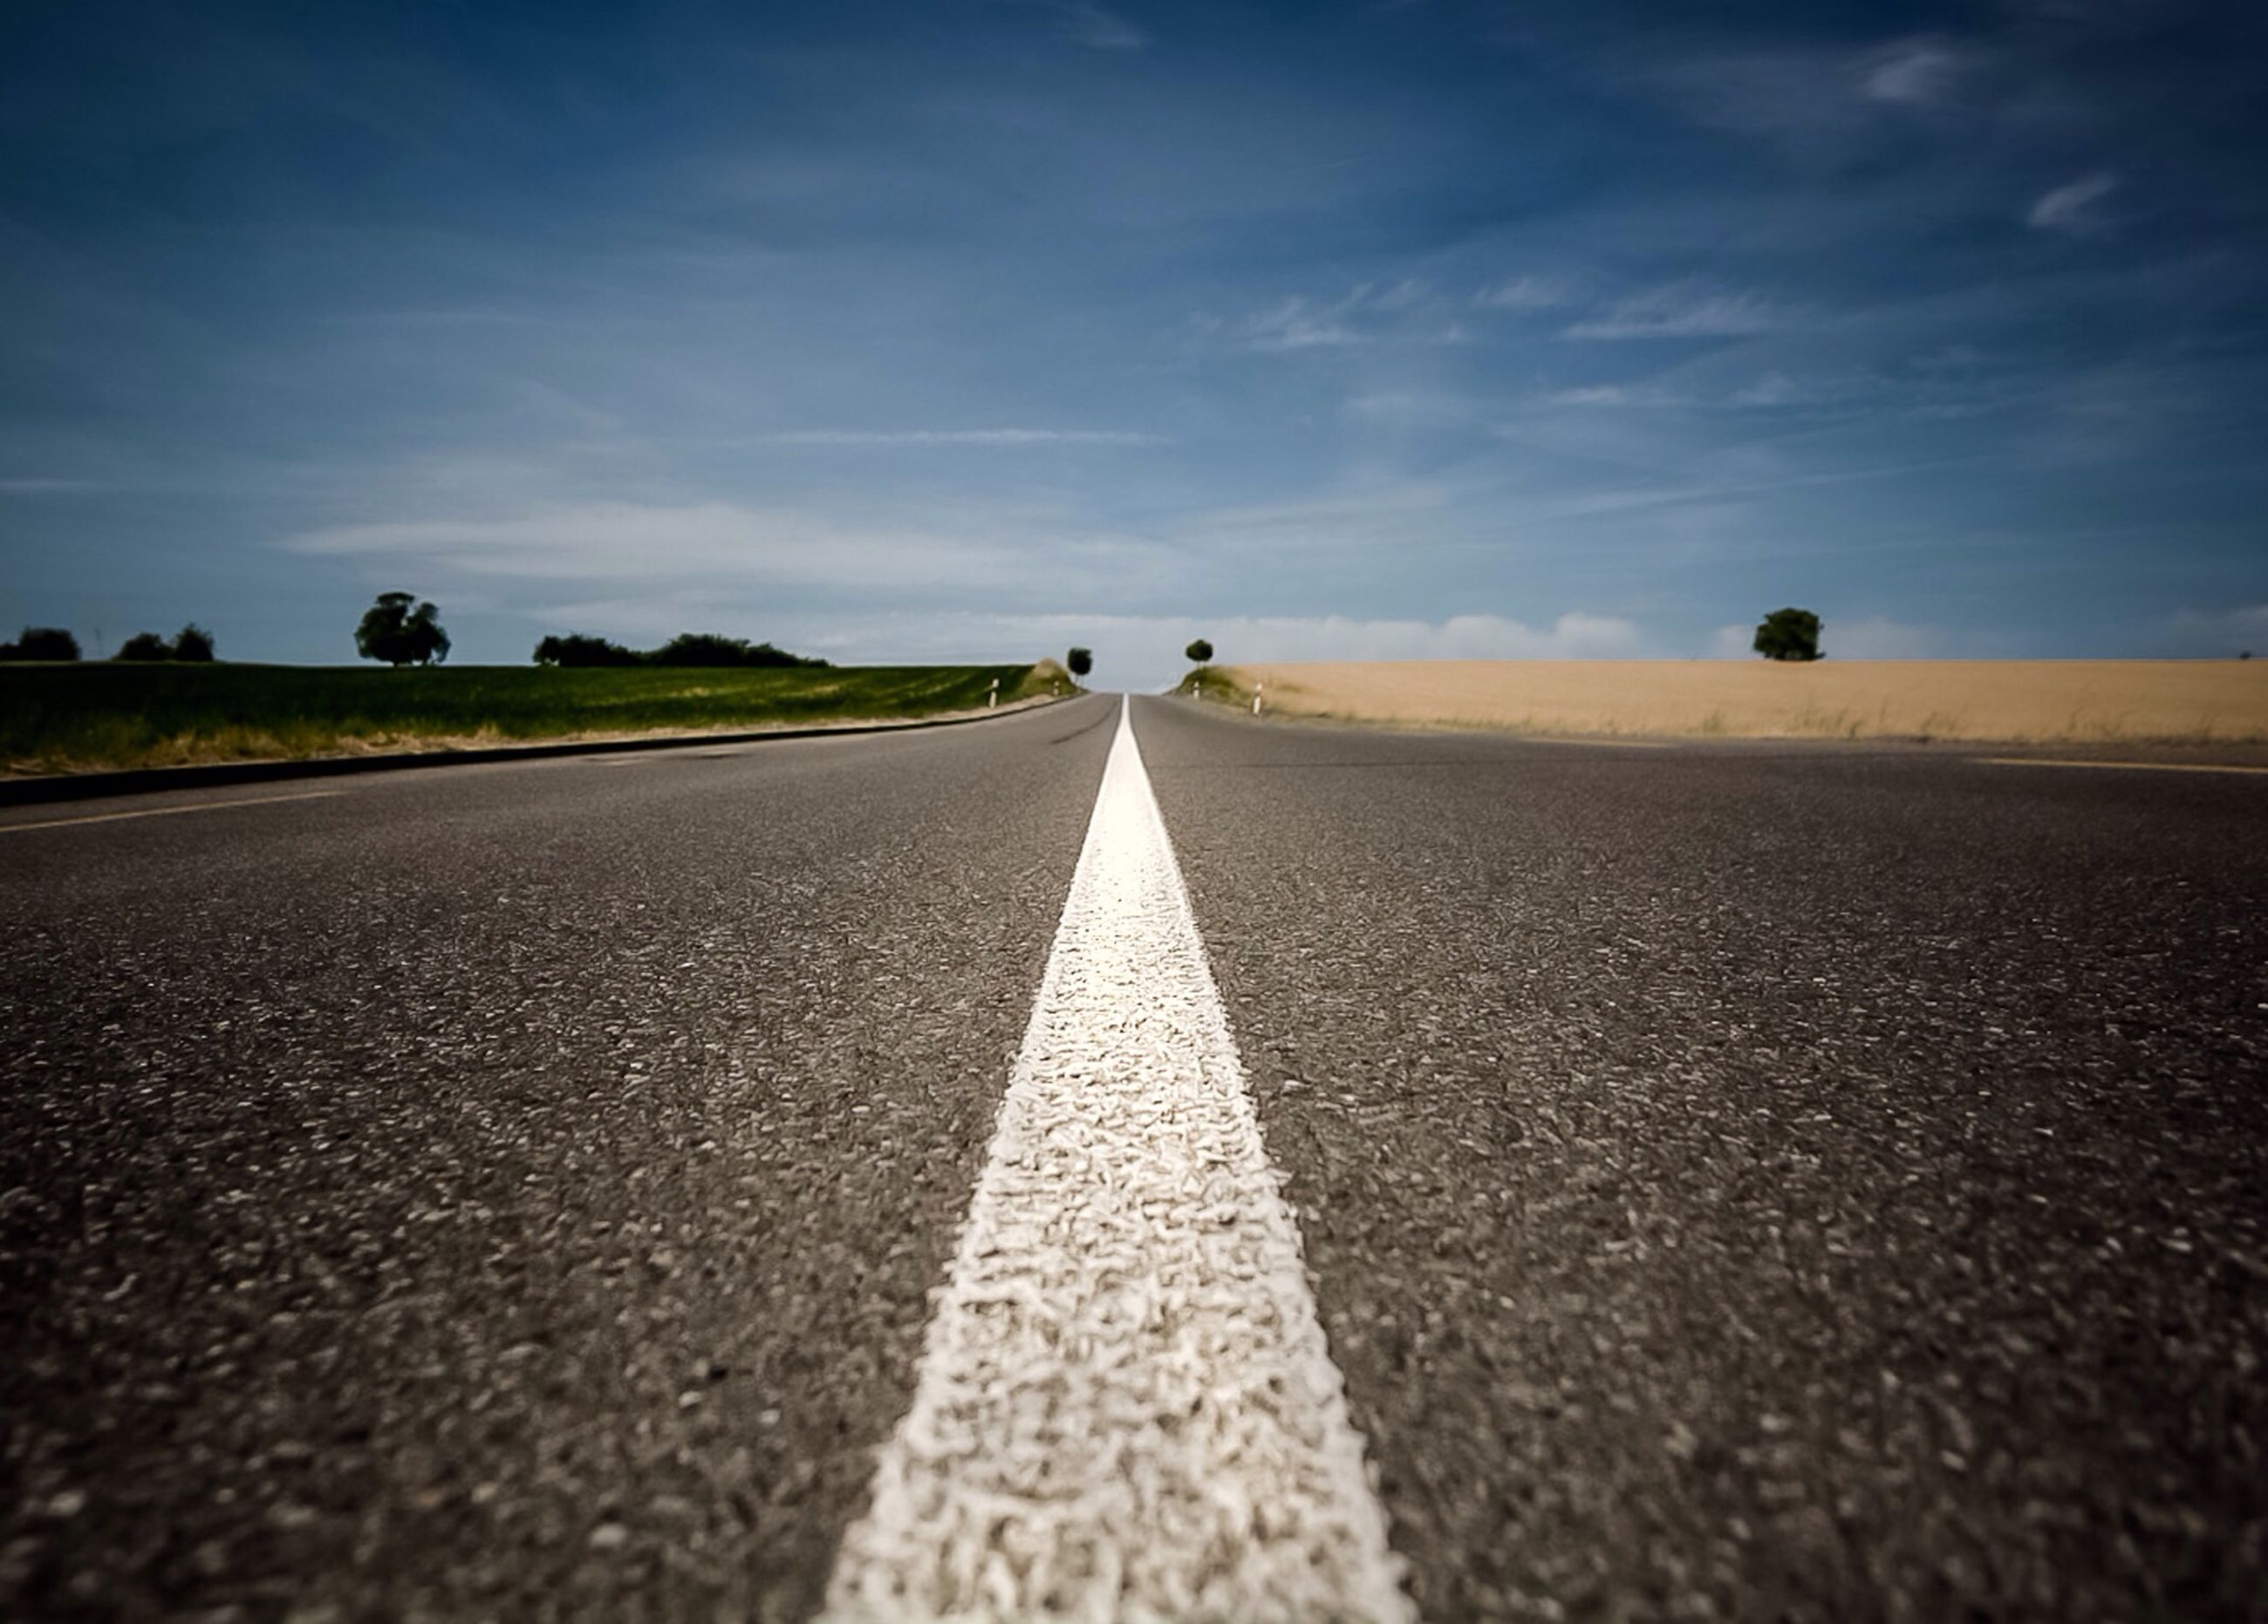 the way forward, diminishing perspective, vanishing point, surface level, transportation, road marking, road, asphalt, sky, long, empty road, cloud - sky, tranquility, empty, outdoors, cloud, street, landscape, tranquil scene, nature